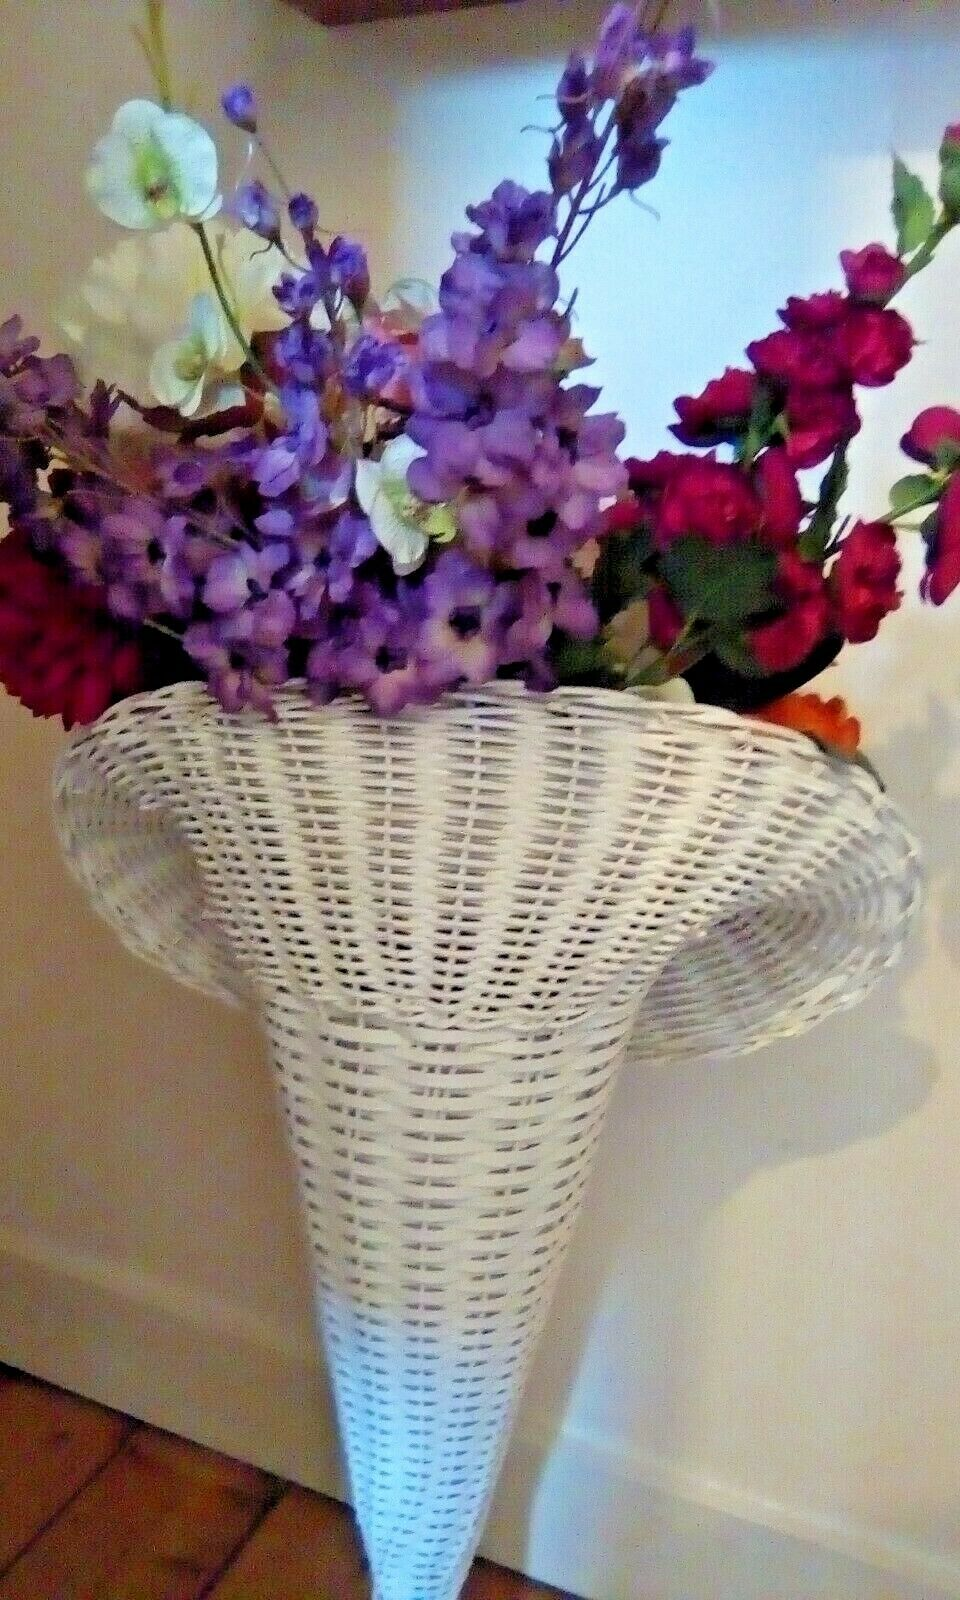 Decorative Floor Standing Vase With Artificial Flowers And Twigs 8x26 Cm Ceram For Sale Ebay